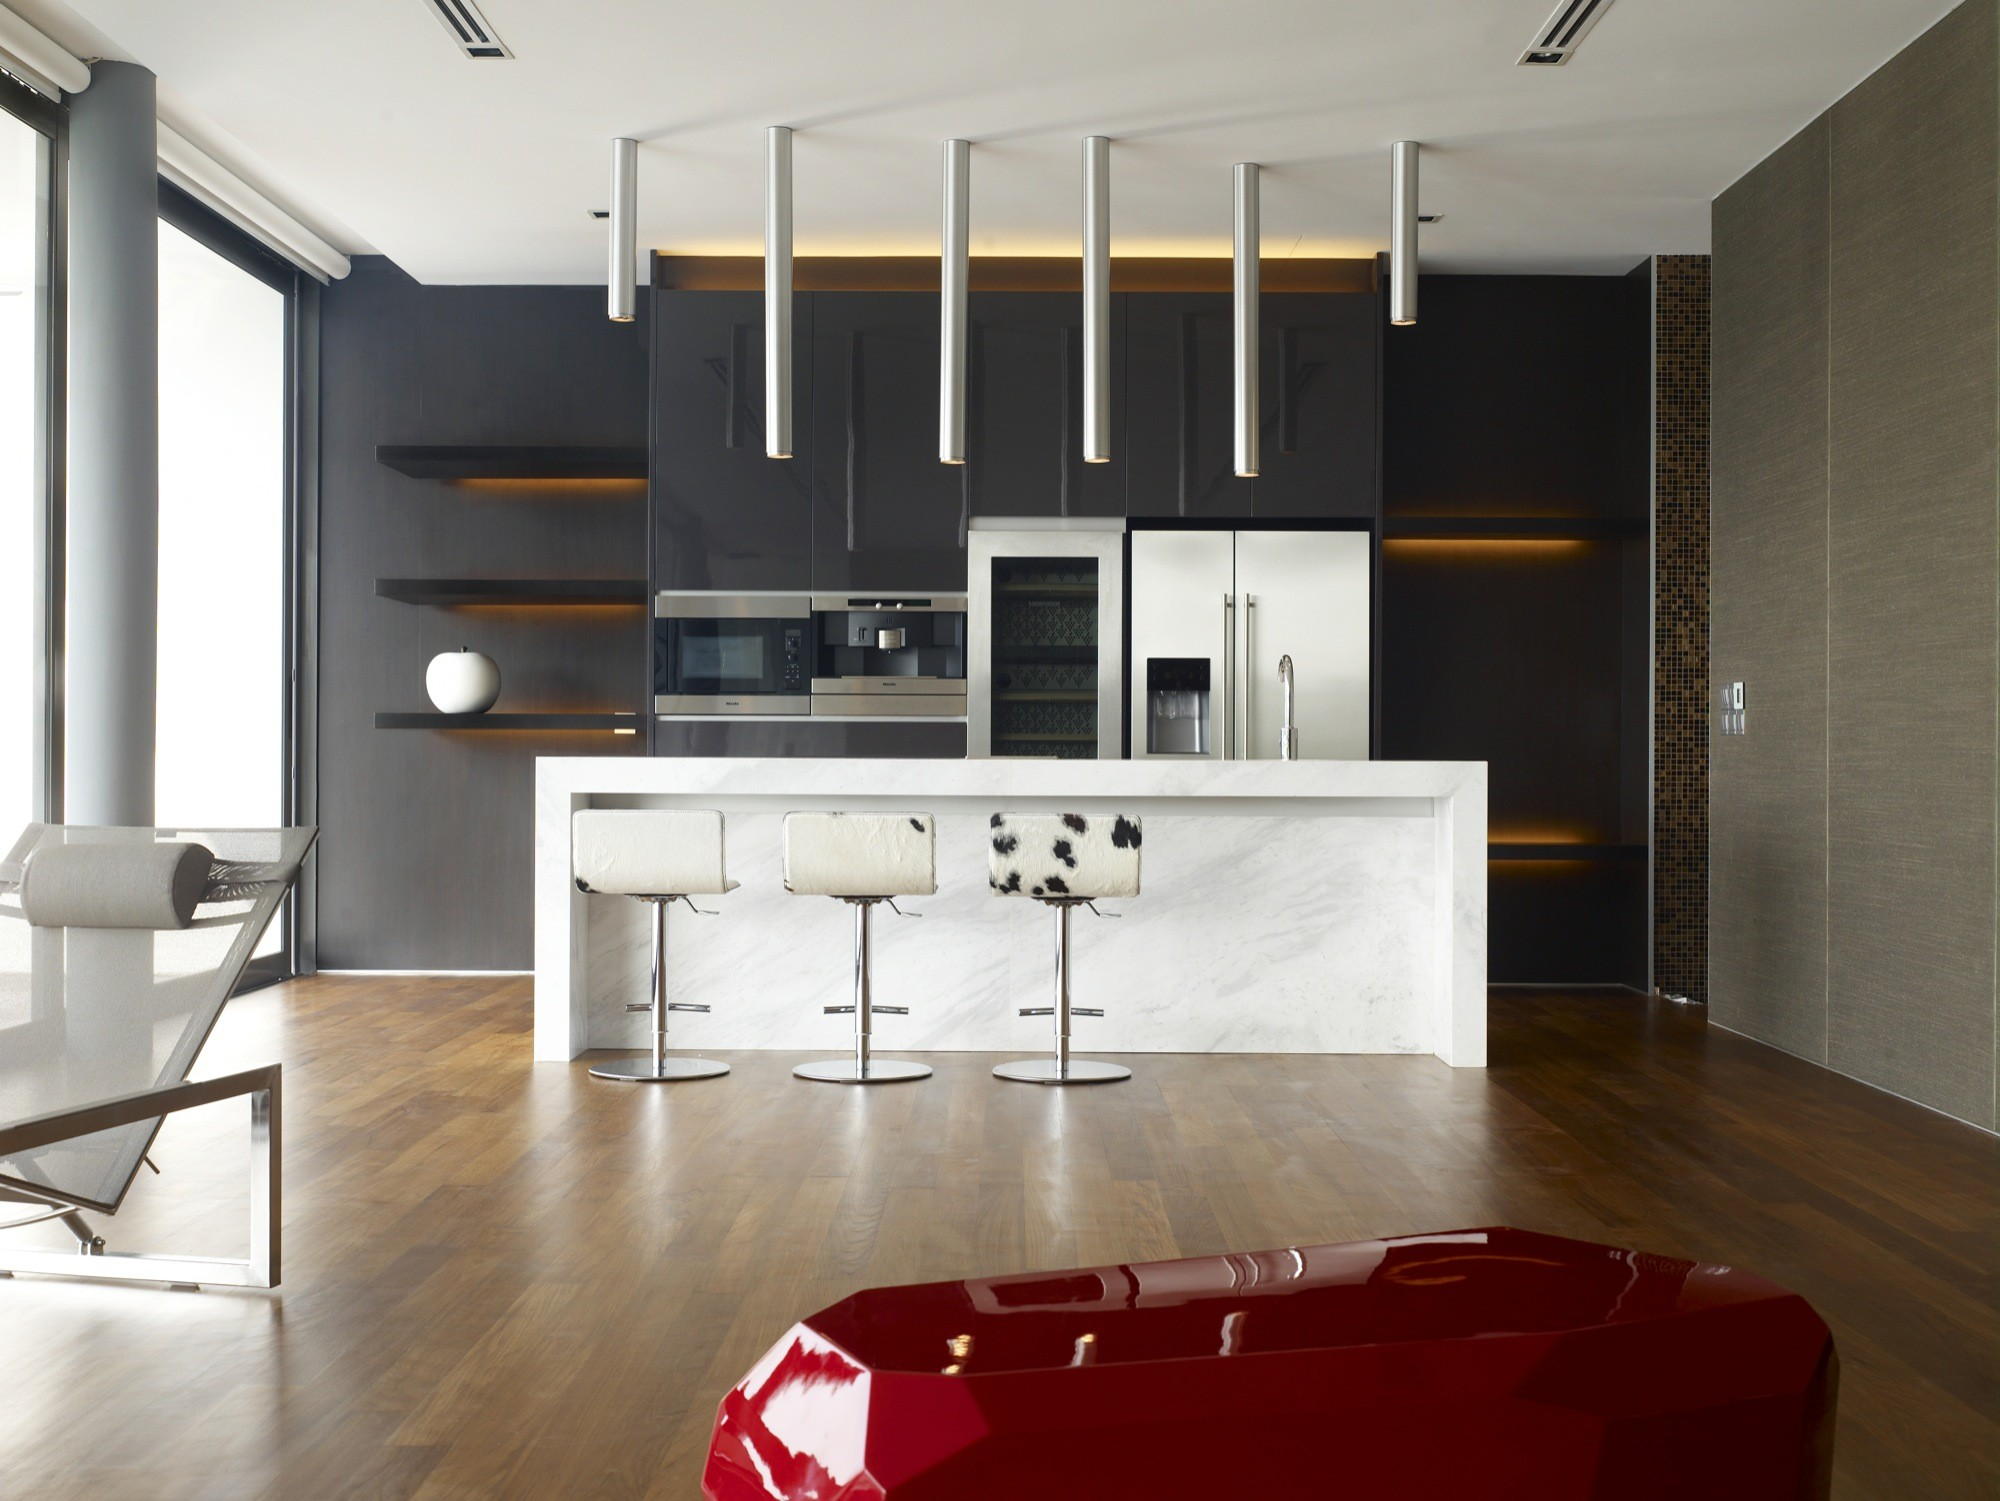 bass ensemble hyla architects kitchen bar lights Derek Swalwell